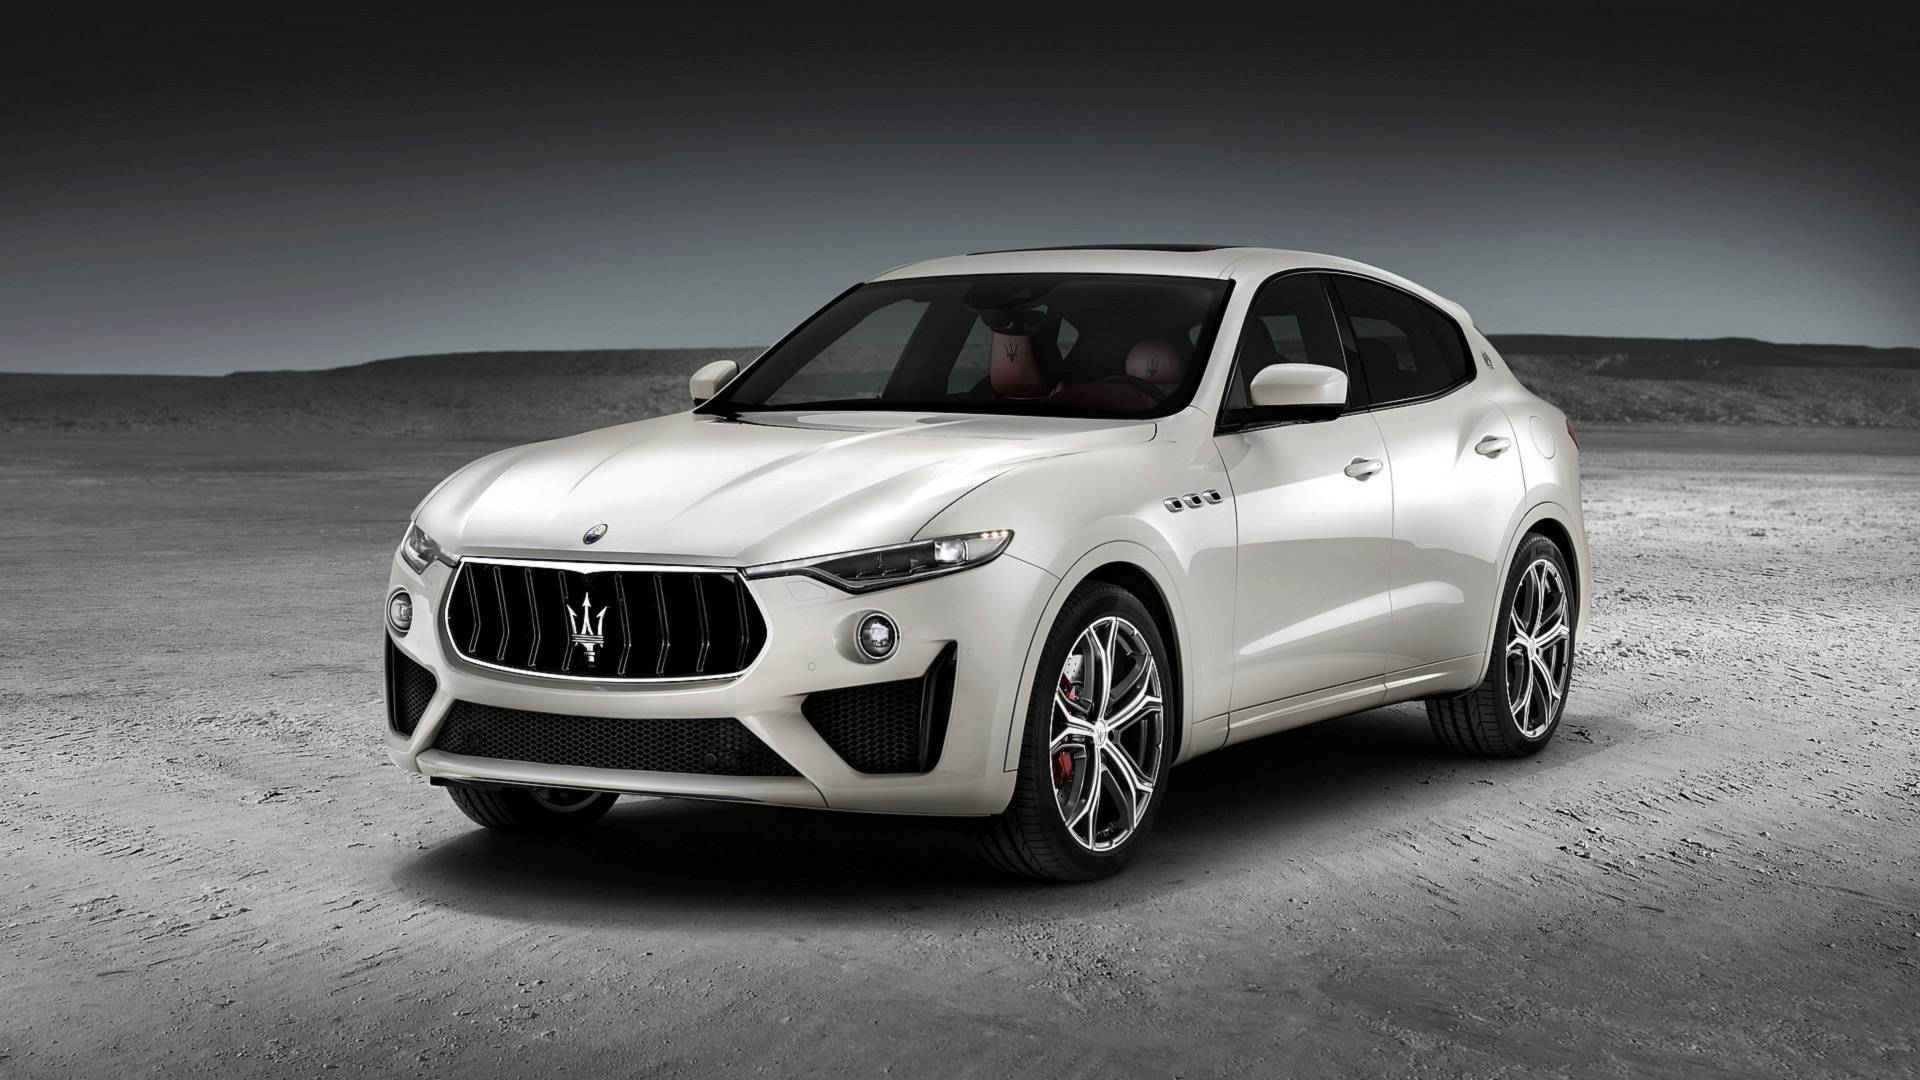 2019 Maserati Levante GTS is No Trofeo, Packs 550-HP V8 Engine - autoevolution